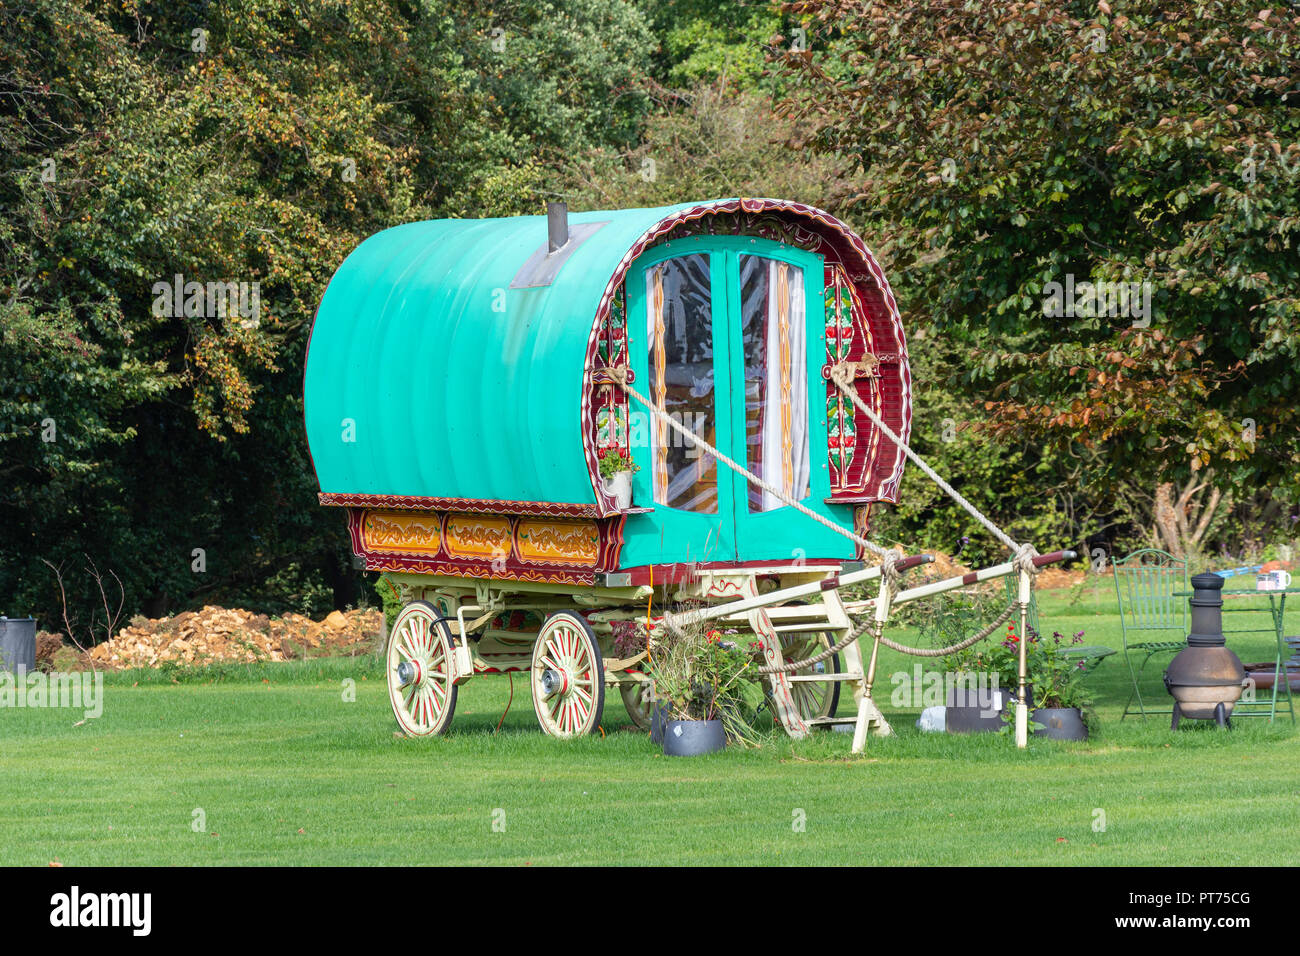 Gypsy caravan at Seven Acres Glamping Site, near Stroud, Gloucestershire, England, United Kingdom - Stock Image